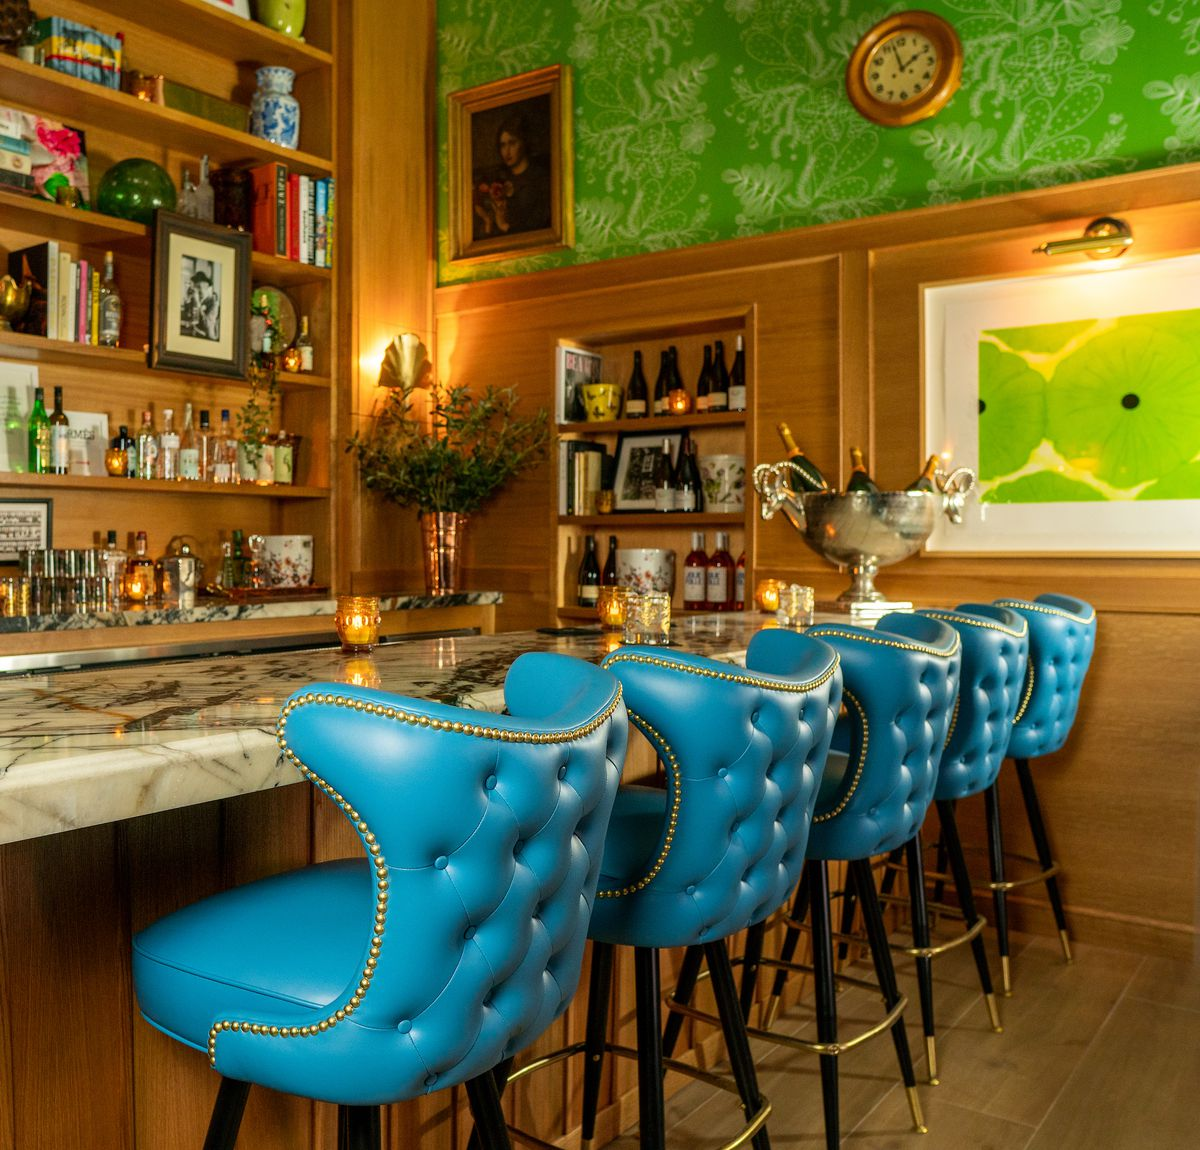 Light blue bar seats at a dark bar with green print and vintage touches and art.